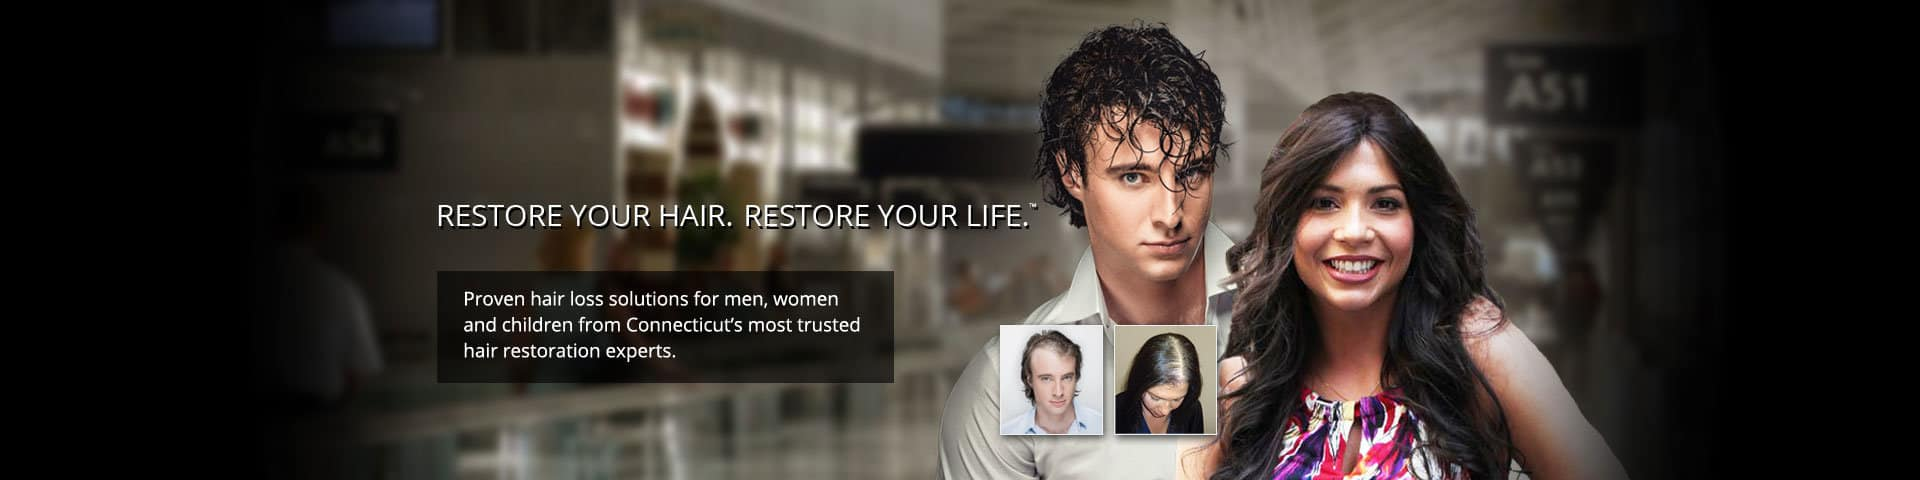 hair-loss-replacement-connecticut